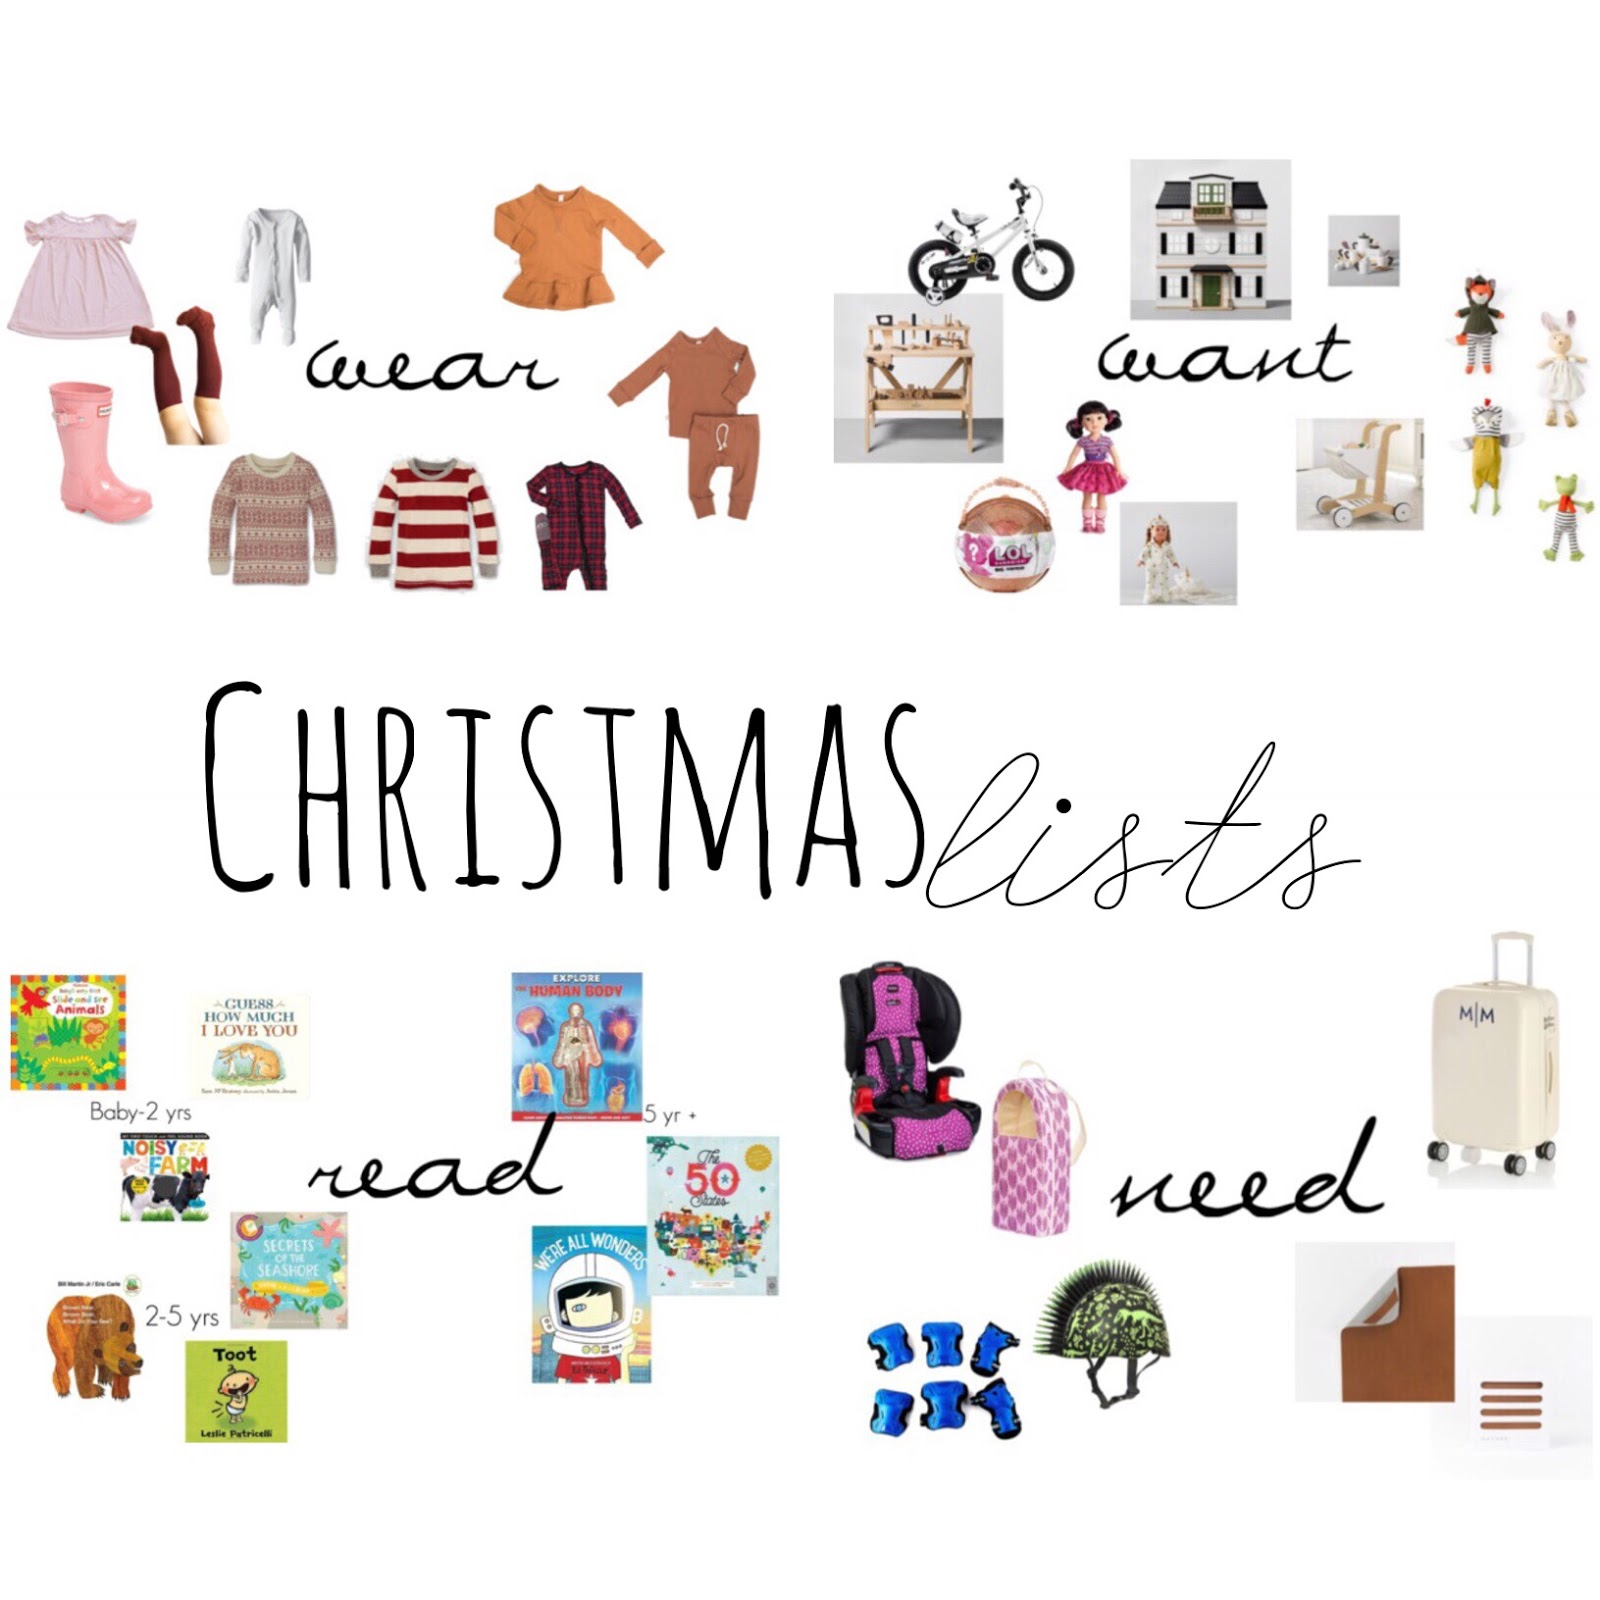 graciously saved: Want, Wear, Need, Read-Christmas gifts